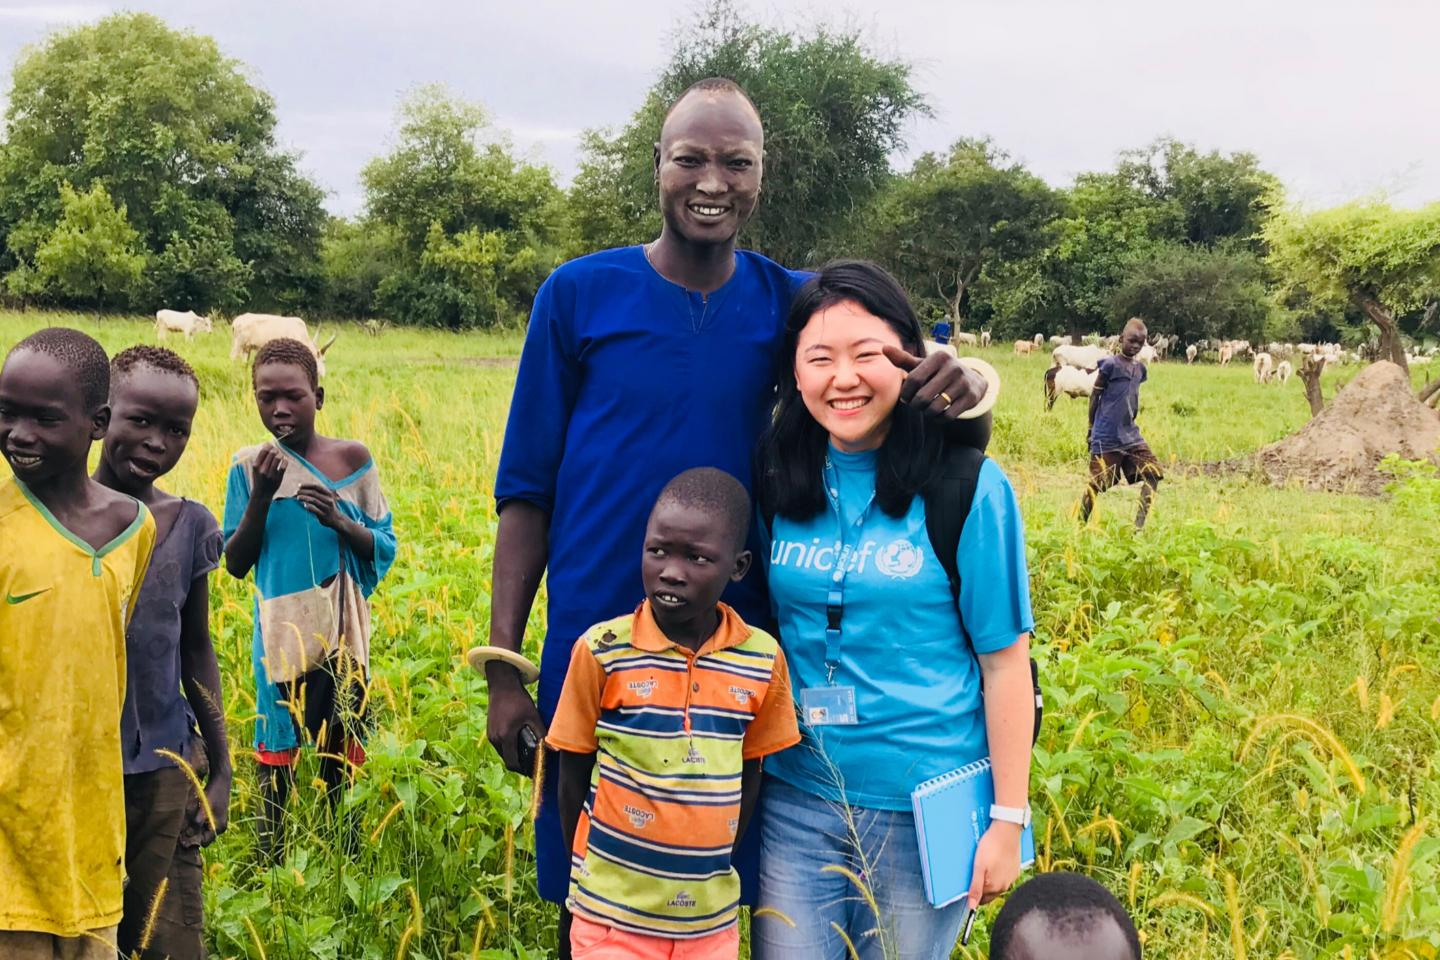 Yiming, an Education Officer on field mission, visits the Pulchuk Cattle Camp located in some remote area in the Lakes State of South Sudan.